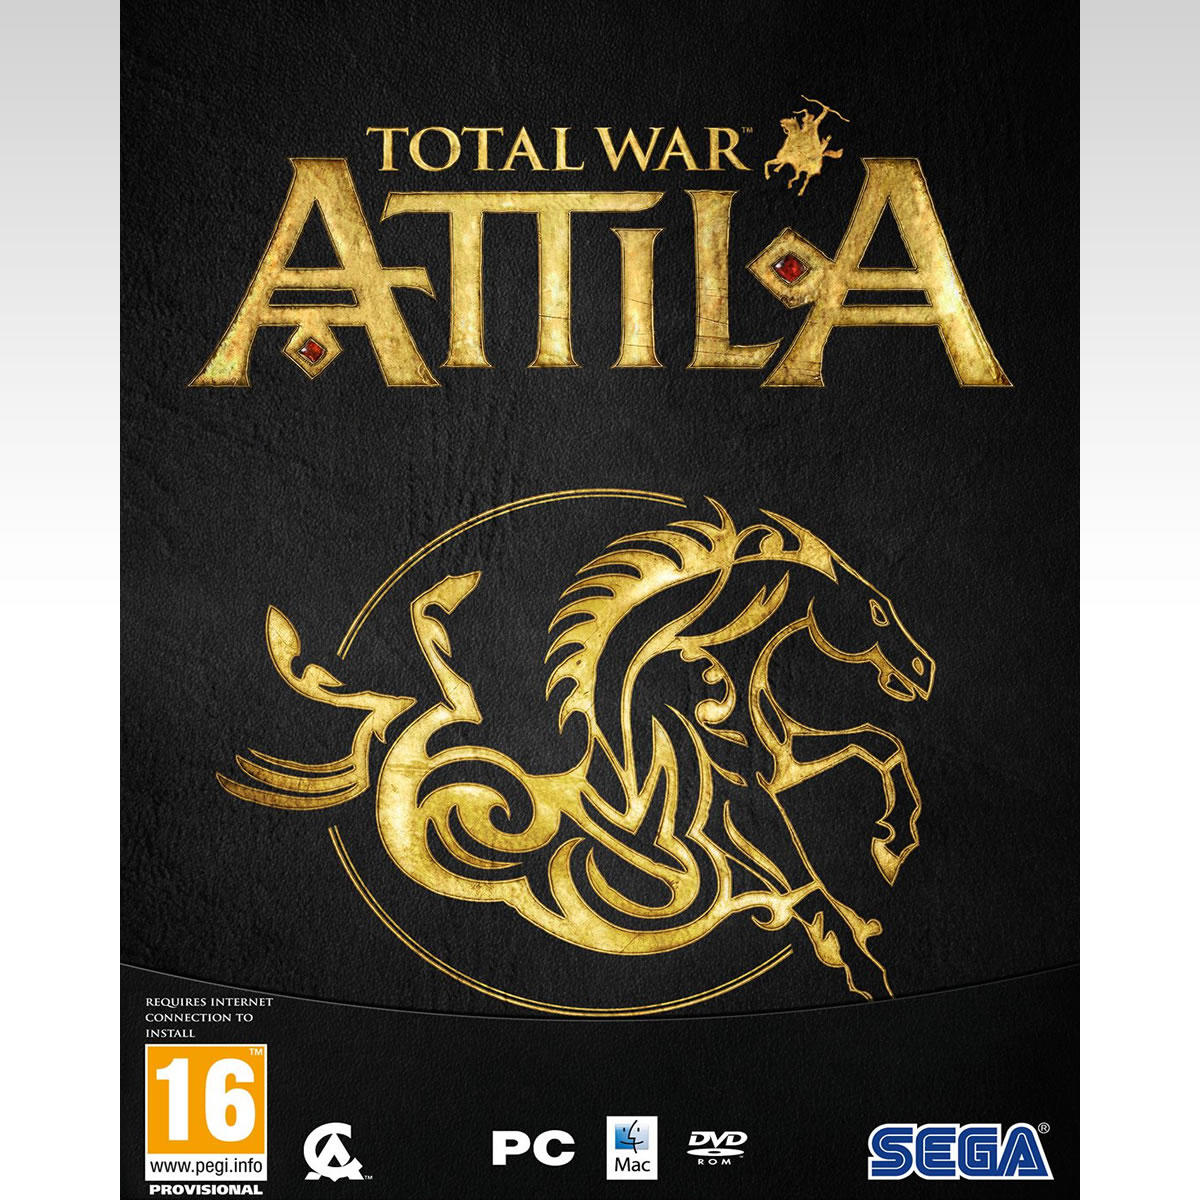 TOTAL WAR: ATTILA - Special Edition (PC)